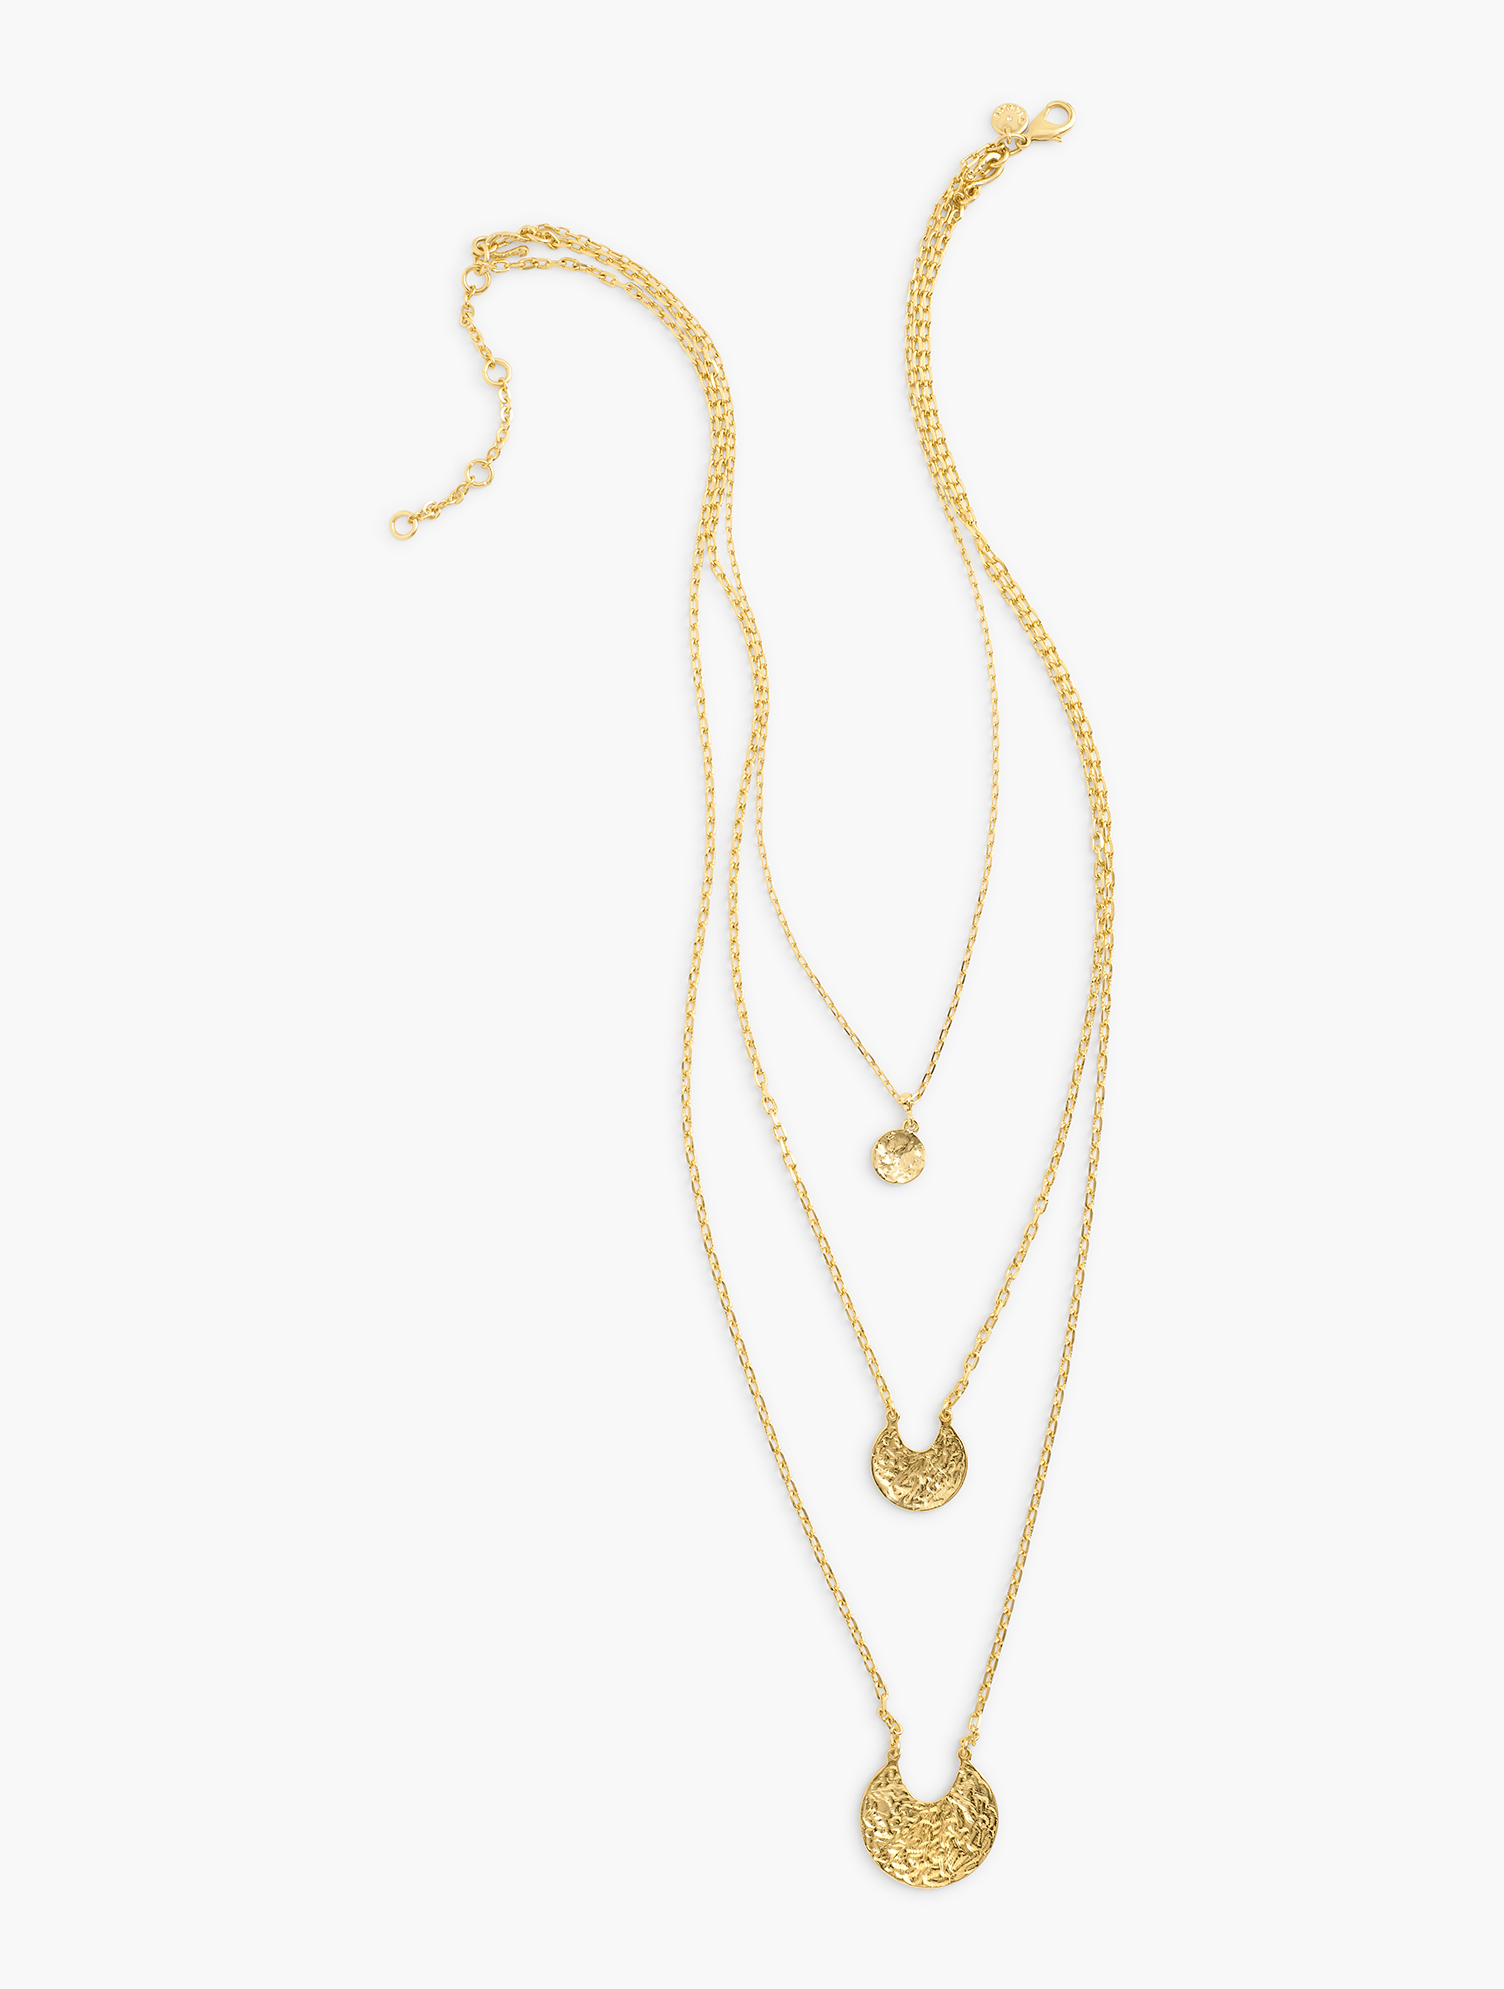 Our Triple Strand Seaside Necklace. Featuring delicate charms inspired by the beach. Features Clasp: Lobster Imported Fit: 31 inches+3 inches Extender Material: 25% Steel Chain, 30% Brass Chain, 44% Zinc, 1% CZ Triple Strand Seaside Necklace - Gold - 001 Talbots